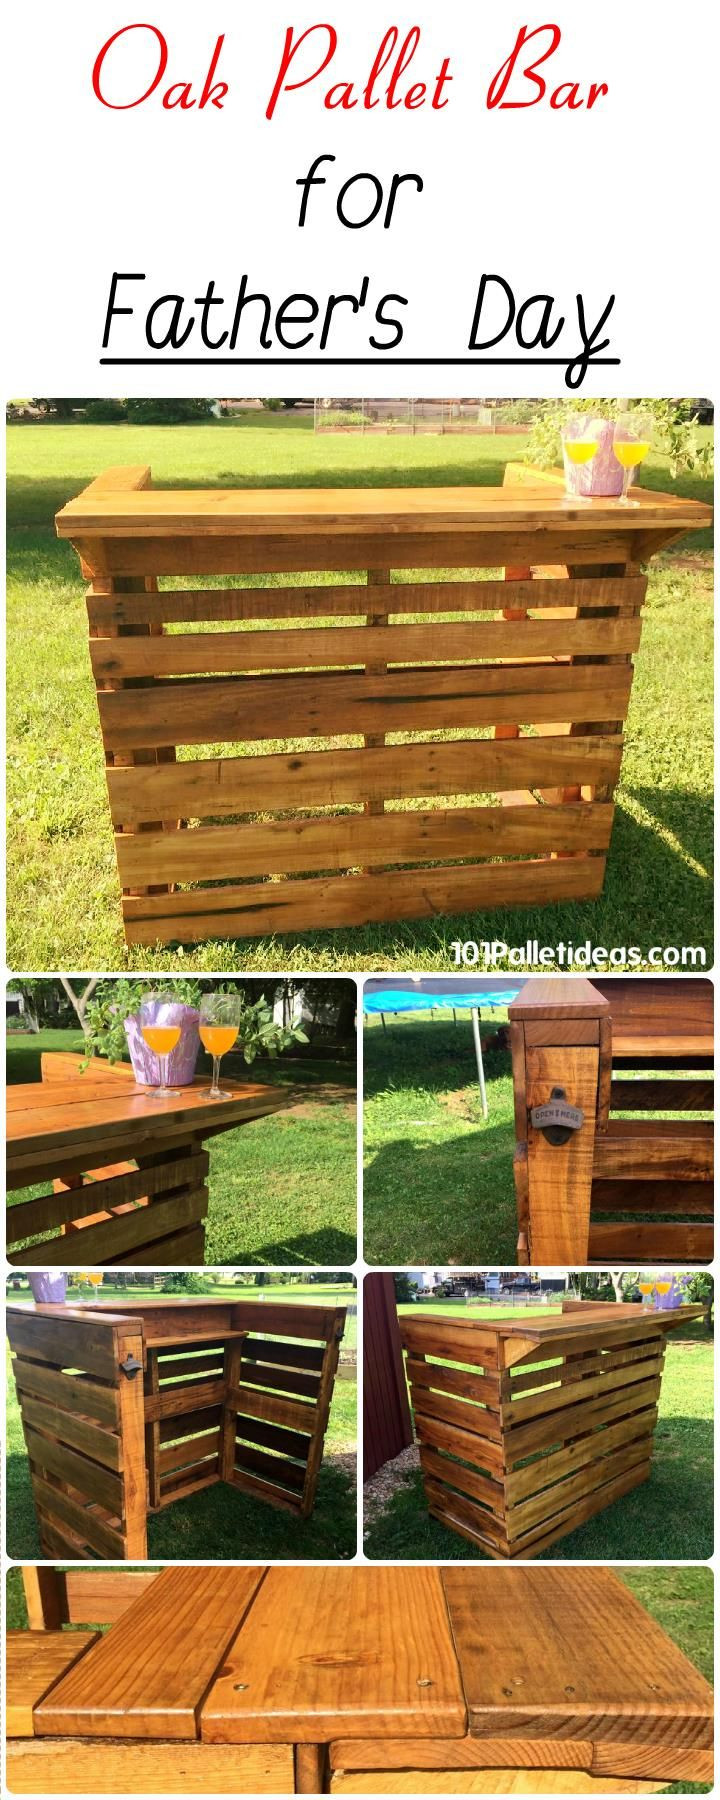 Best ideas about DIY Pallet Bar . Save or Pin 1000 ideas about Pallet Bar on Pinterest Now.